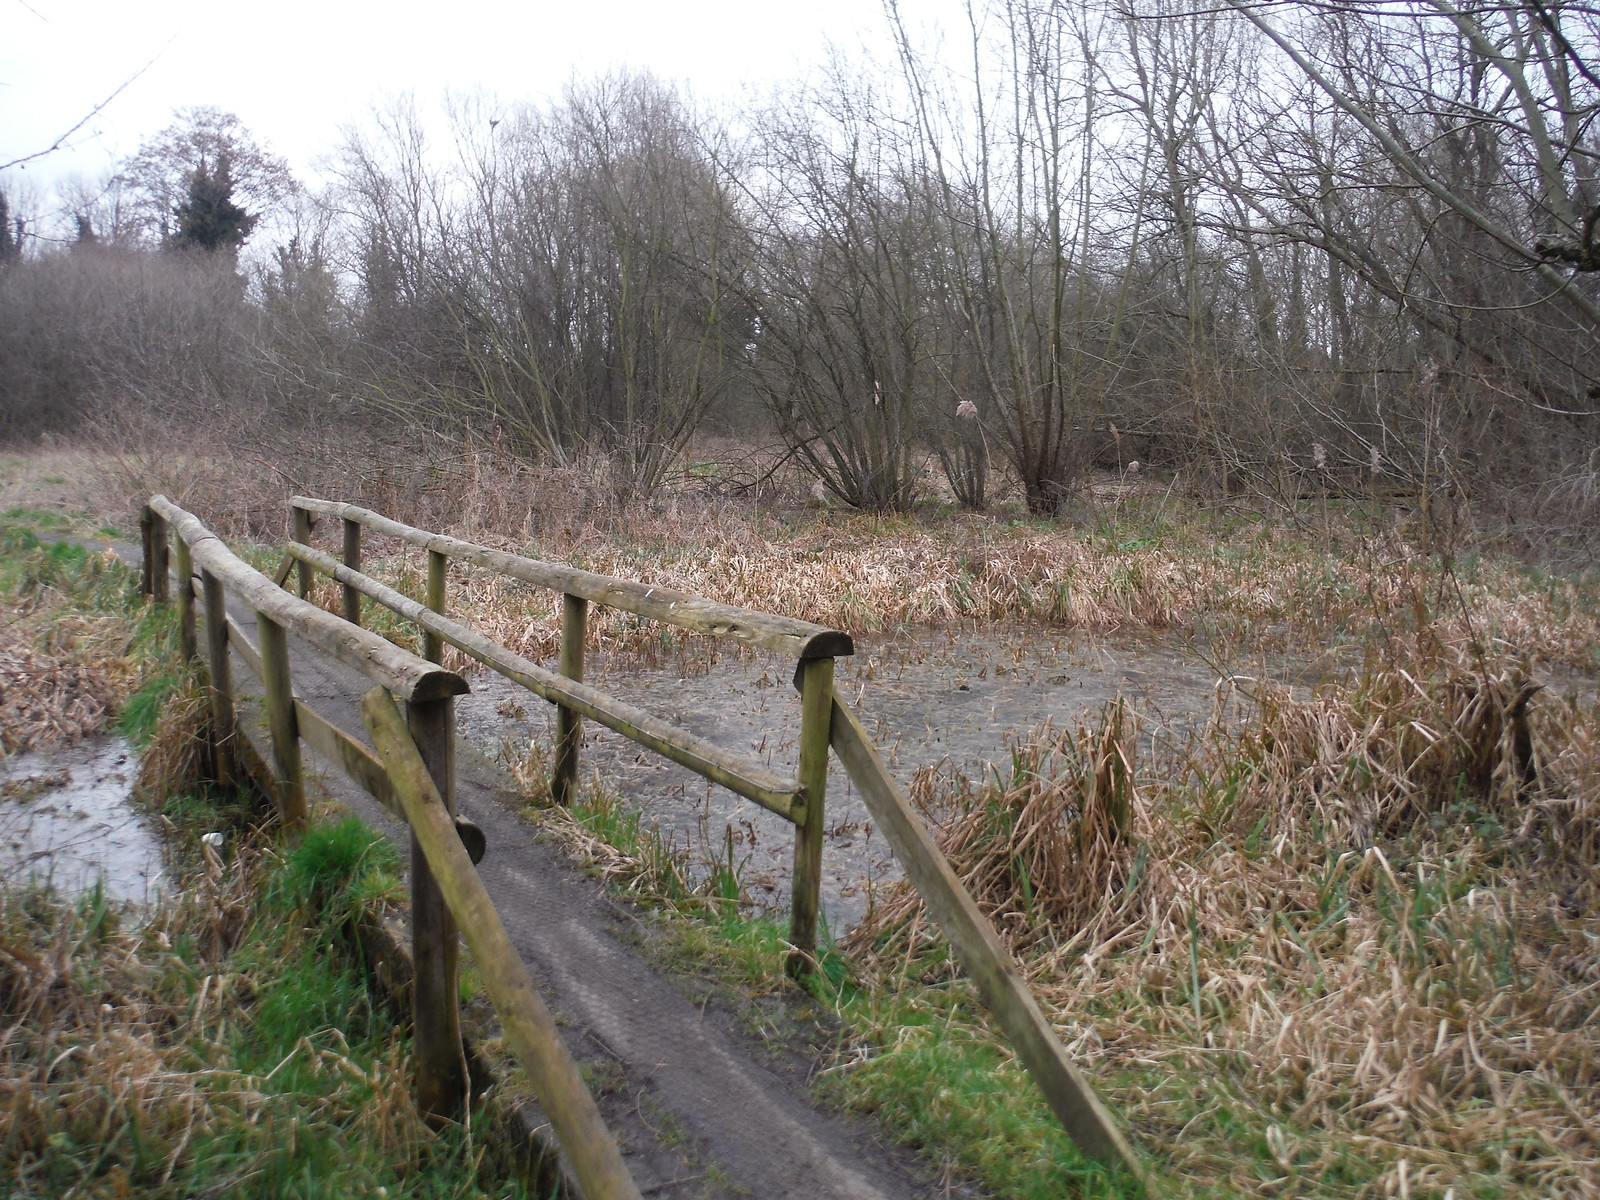 Bridge across Mire, near River Rom SWC Short Walk 33 - Dagenham Parks, Rivers and Ponds